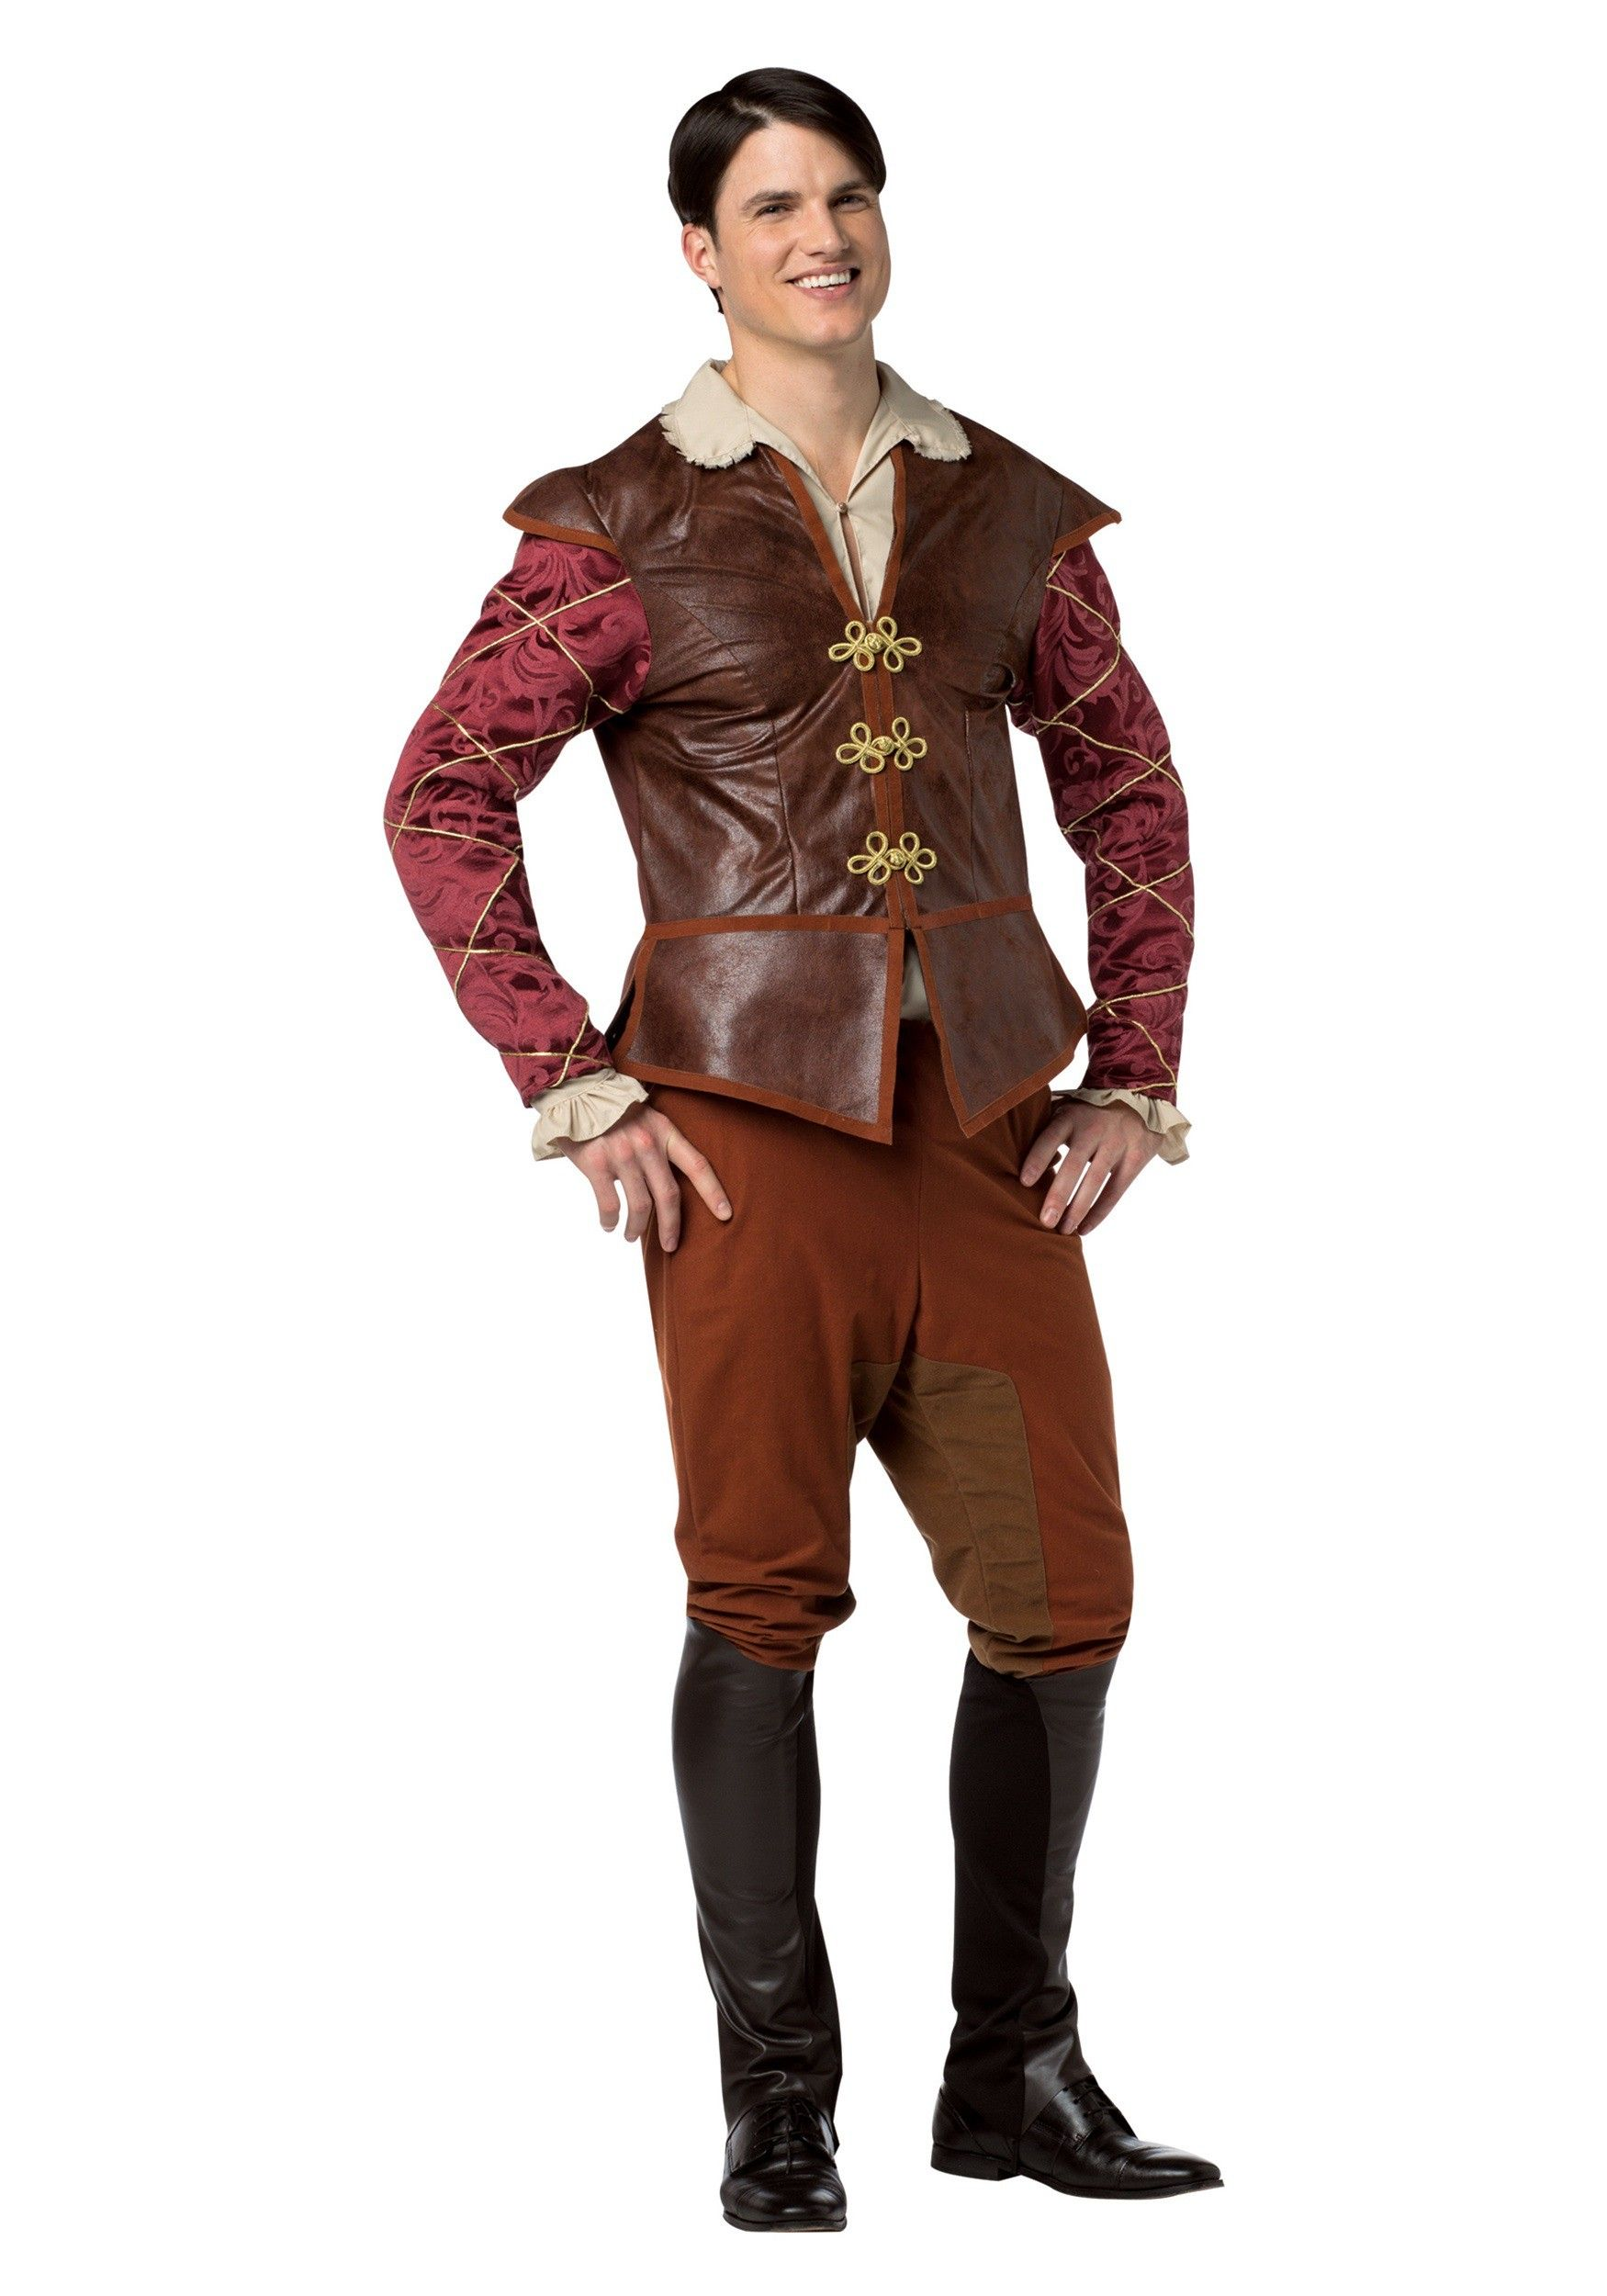 Wear this officially licensed Once Upon a Time Prince Charming costume and youu0027ll look just like the popular character from this ABC series.  sc 1 st  Pinterest & Pin by Lakeview Musical Costumes on Sir Harry | Pinterest | Costumes